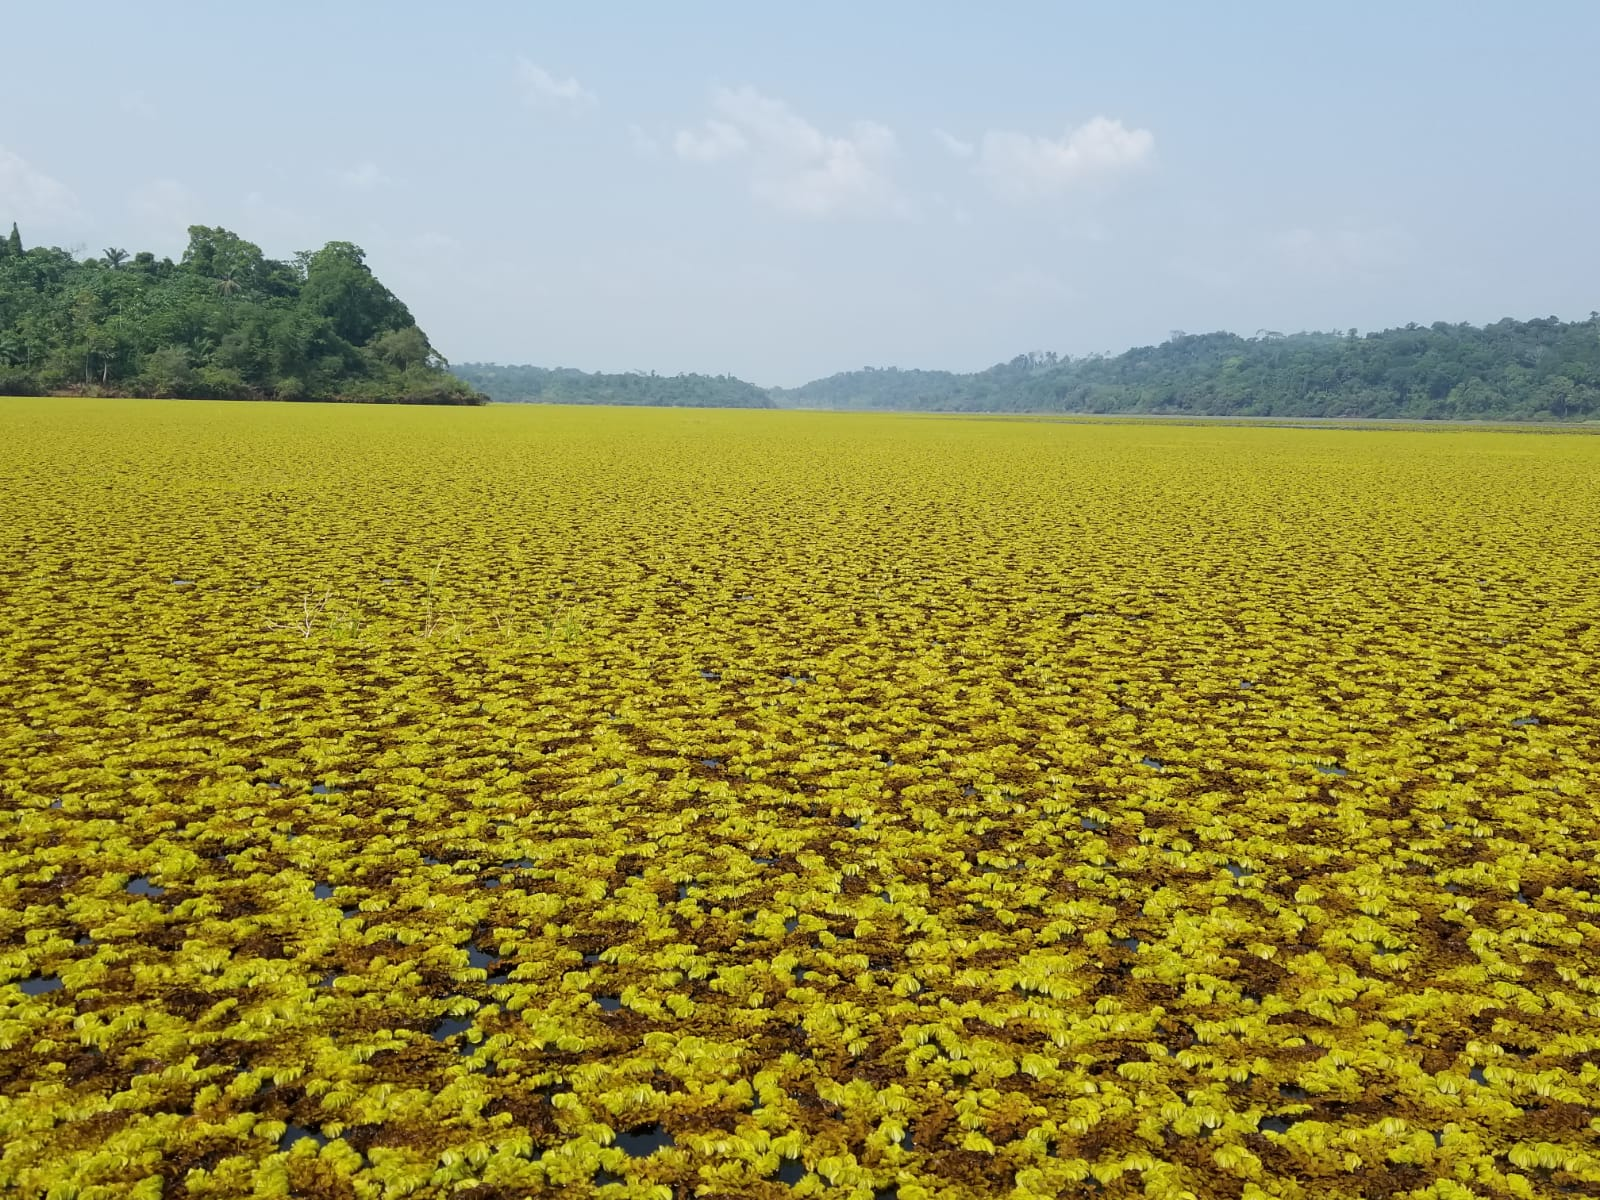 What's happening now with the Salvinia plant at Lake Ossa?